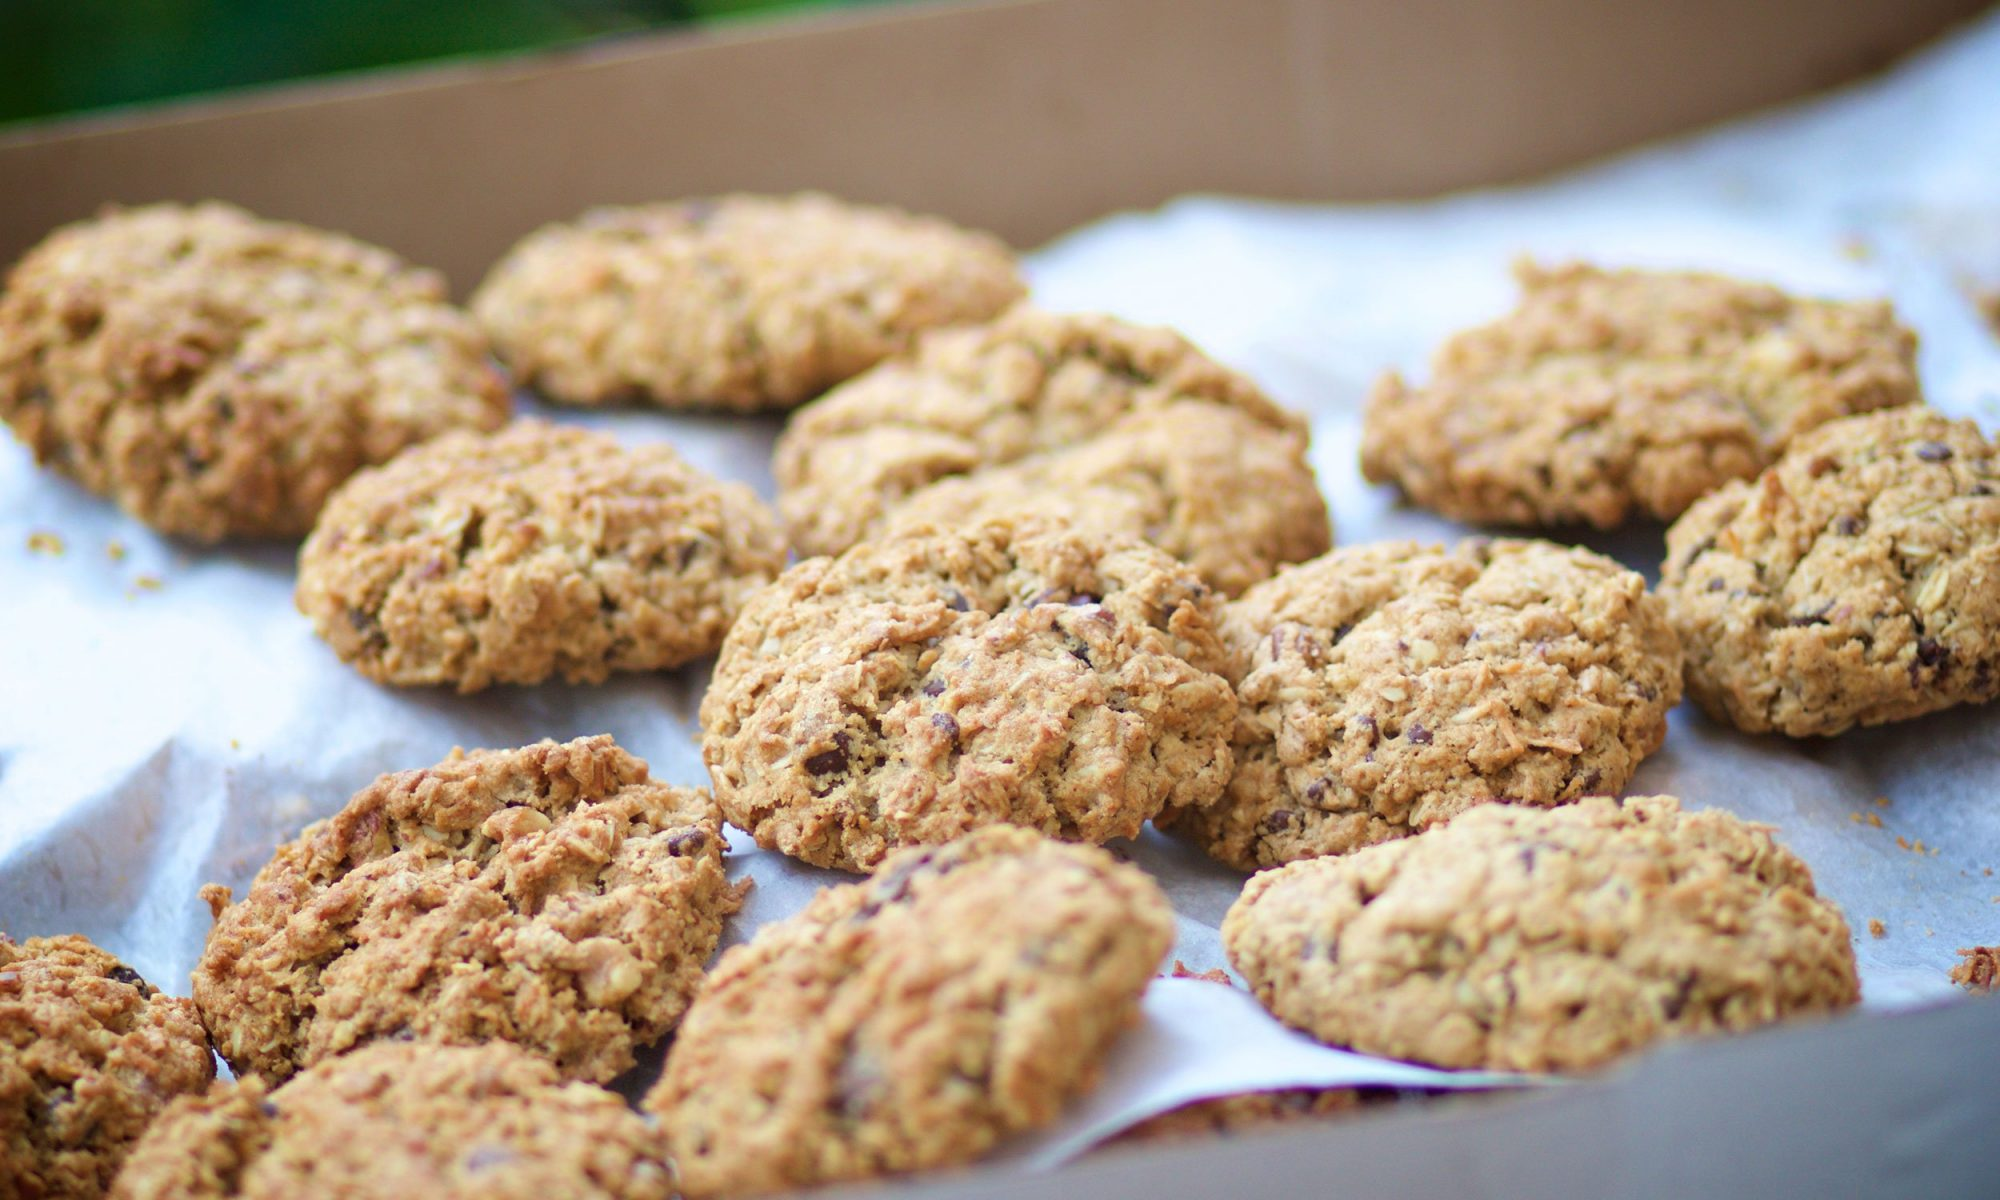 How to Make Cookies from Leftover Oatmeal